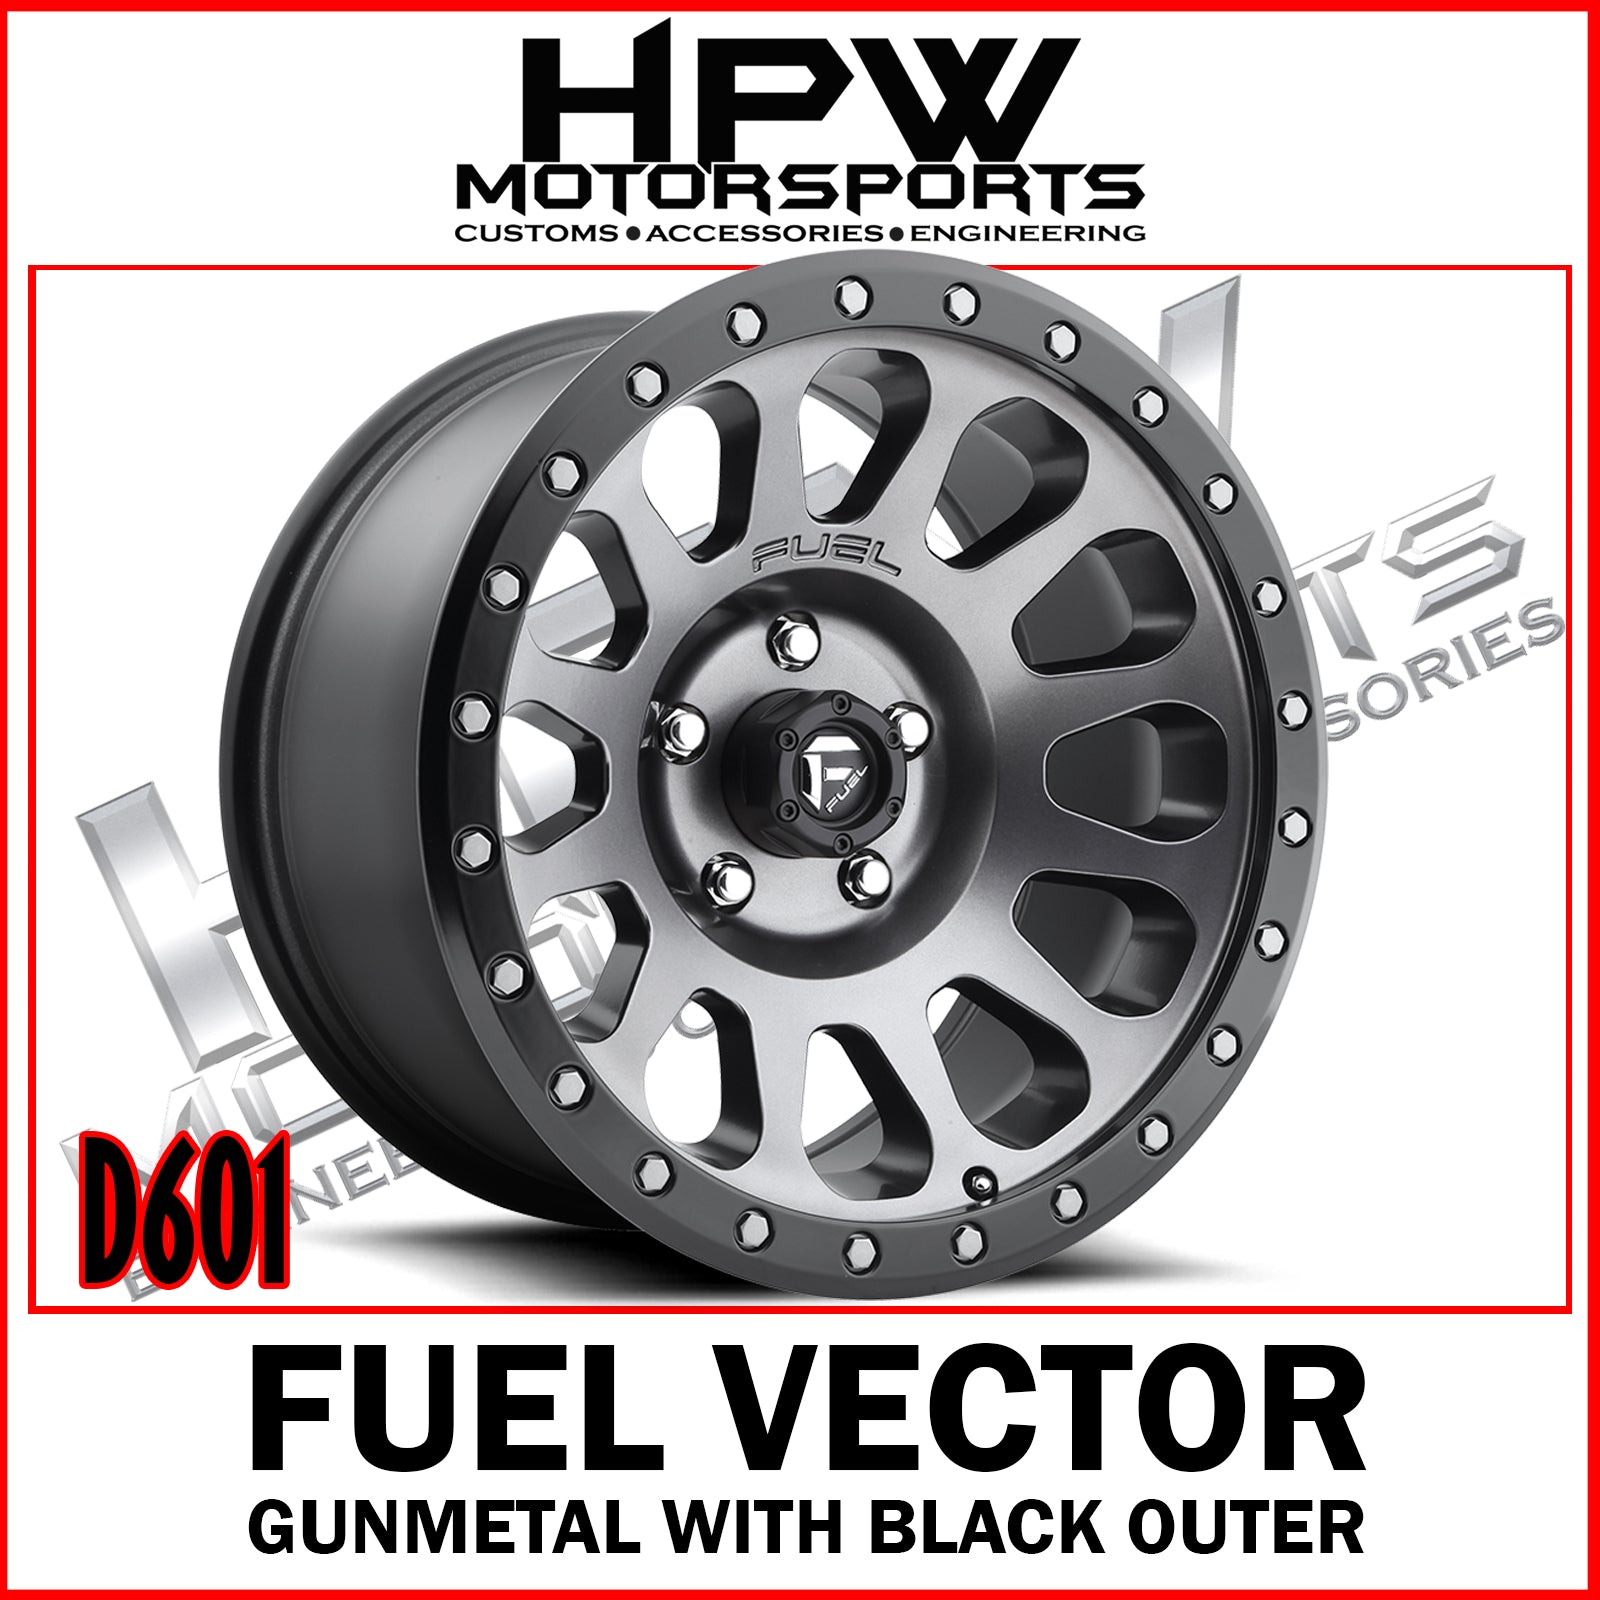 D601 FUEL VECTOR - GUNMETAL & MATTE BLACK - Set of 4